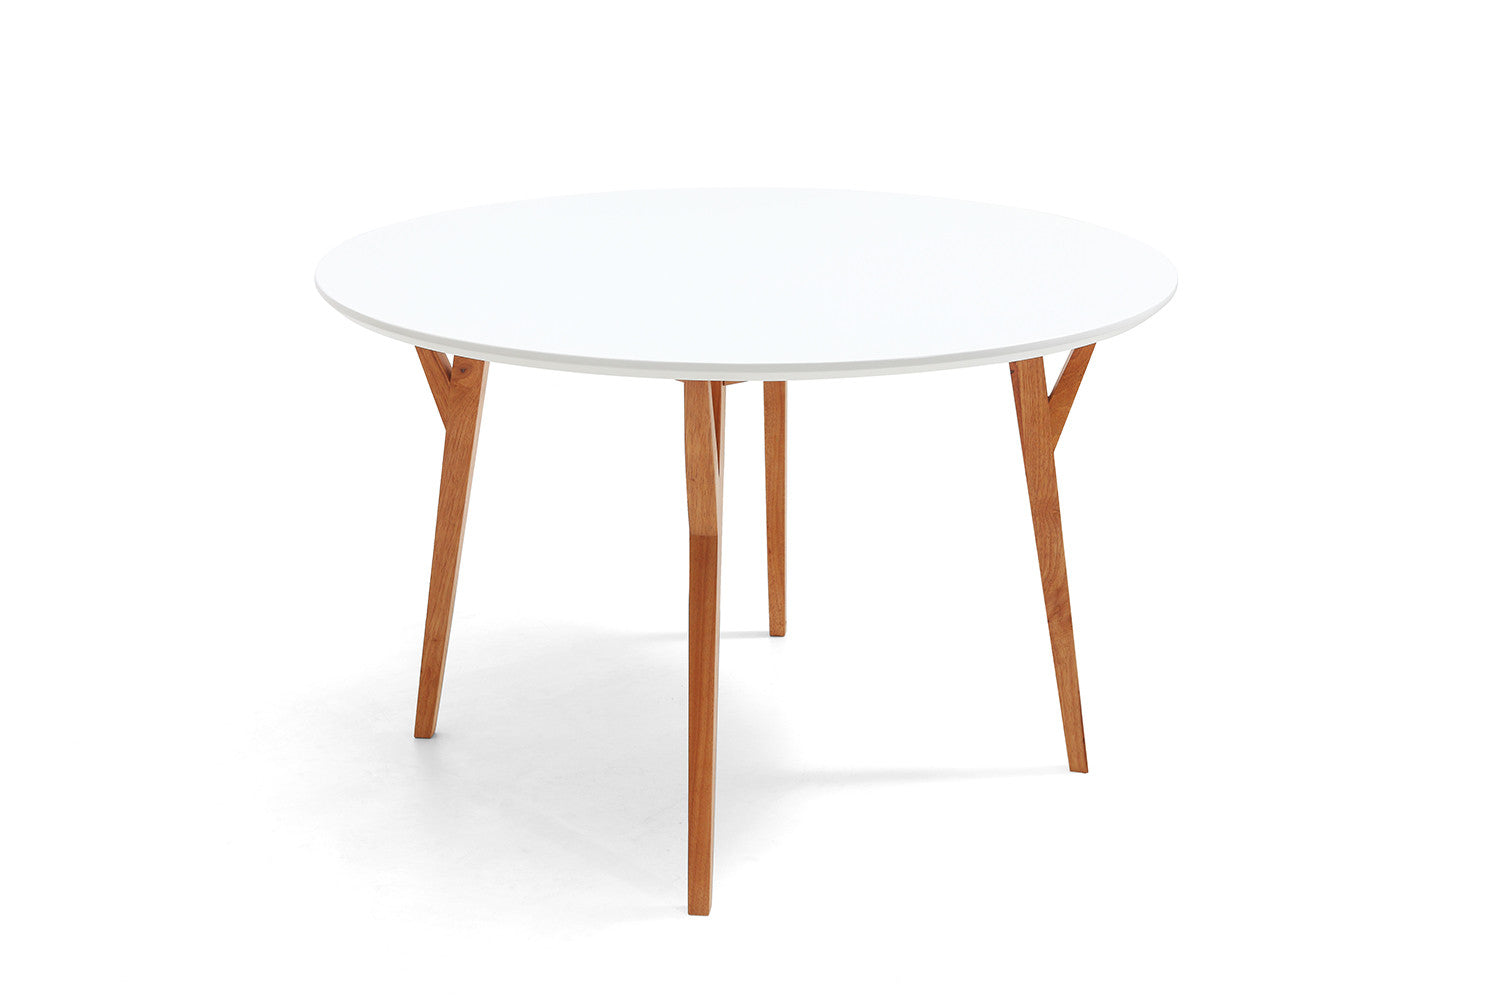 Table salle a manger scandinave meilleures images d for Table salle manger ronde extensible design